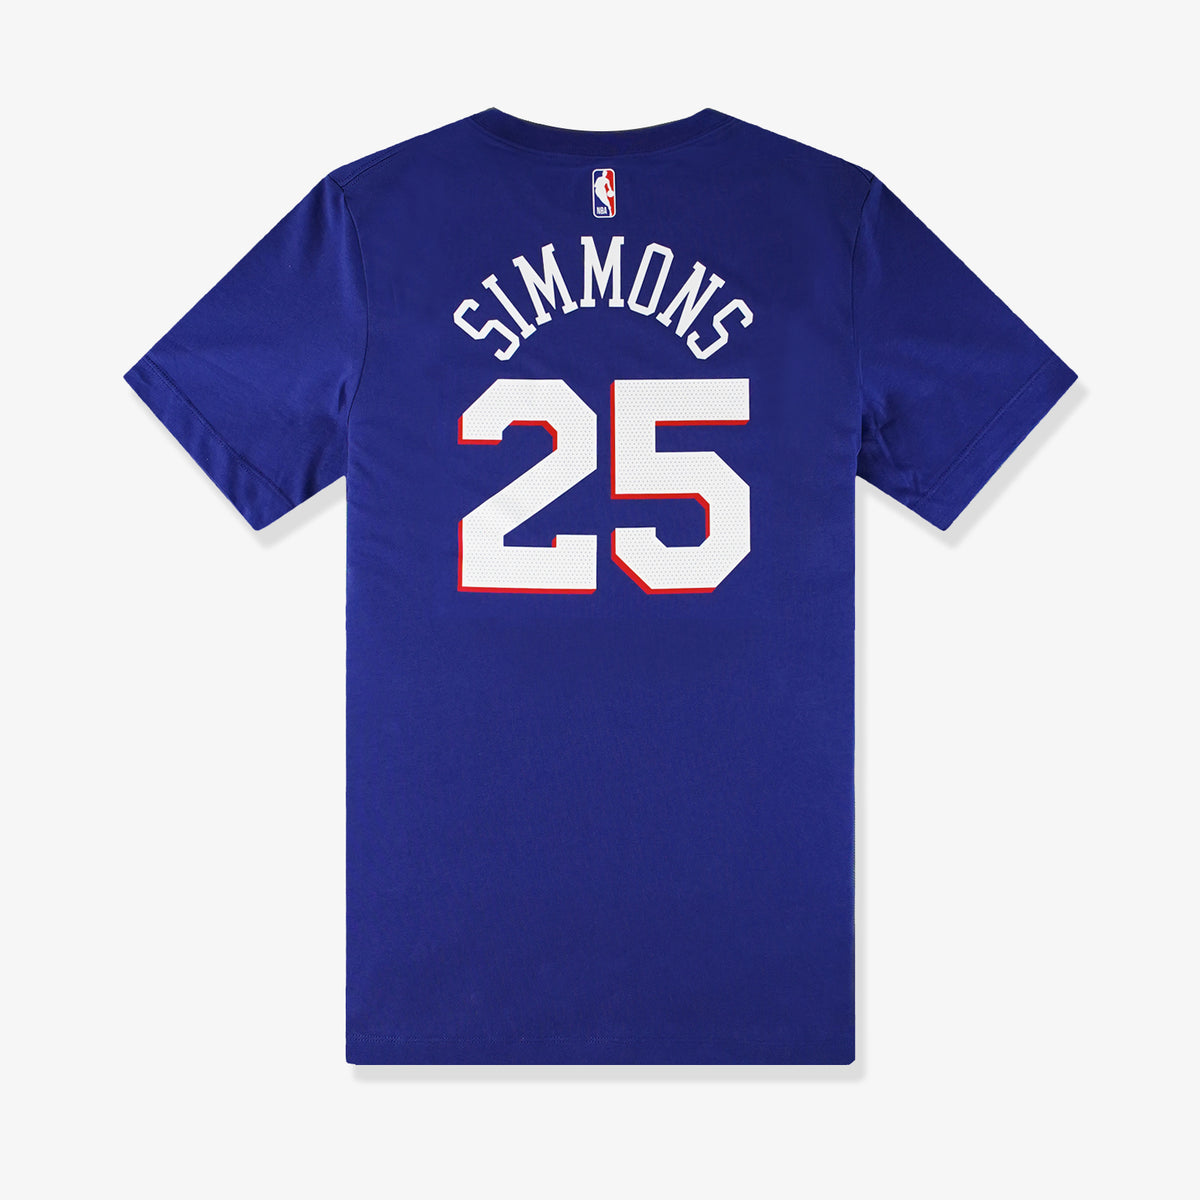 Ben Simmons Philadelphia 76ers Name and Number T-Shirt - Blue